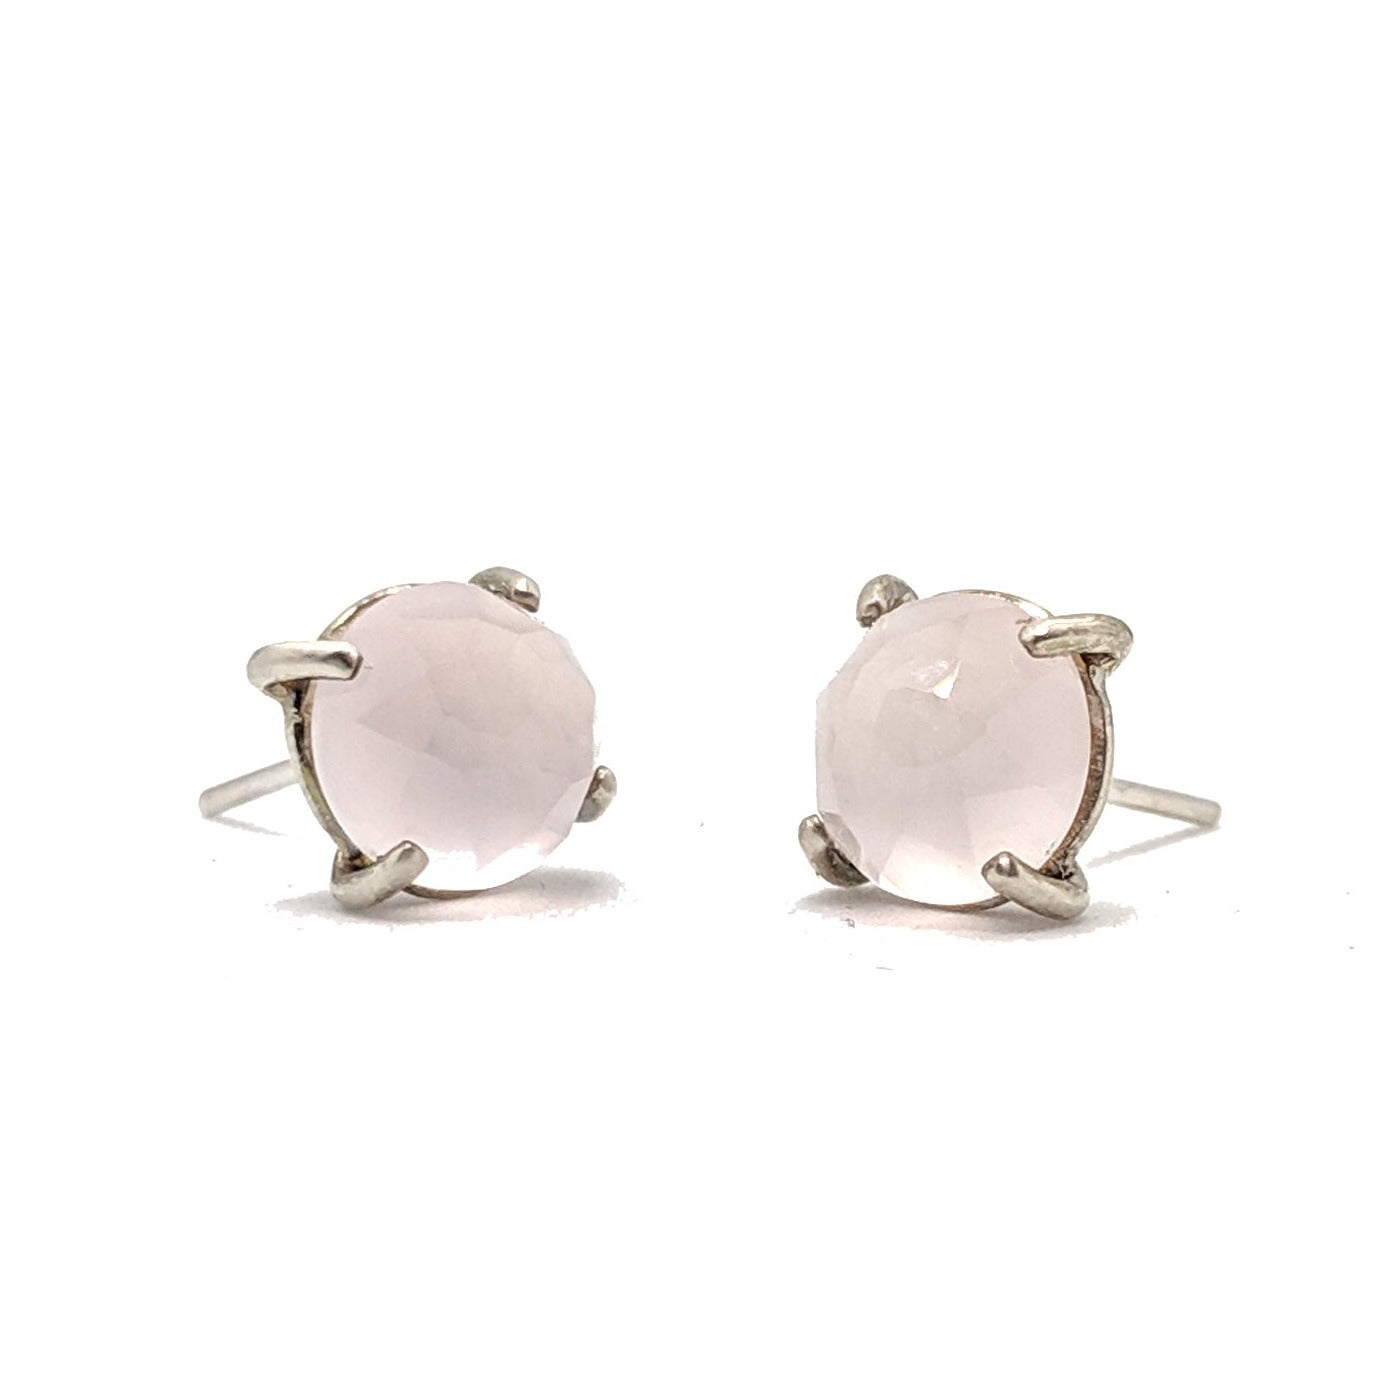 Christine Bossler Stud Earrings - Sterling Silver + Rose Cut Rose Quartz, Christine Bossler, Handcrafted Home Goods and Gifts